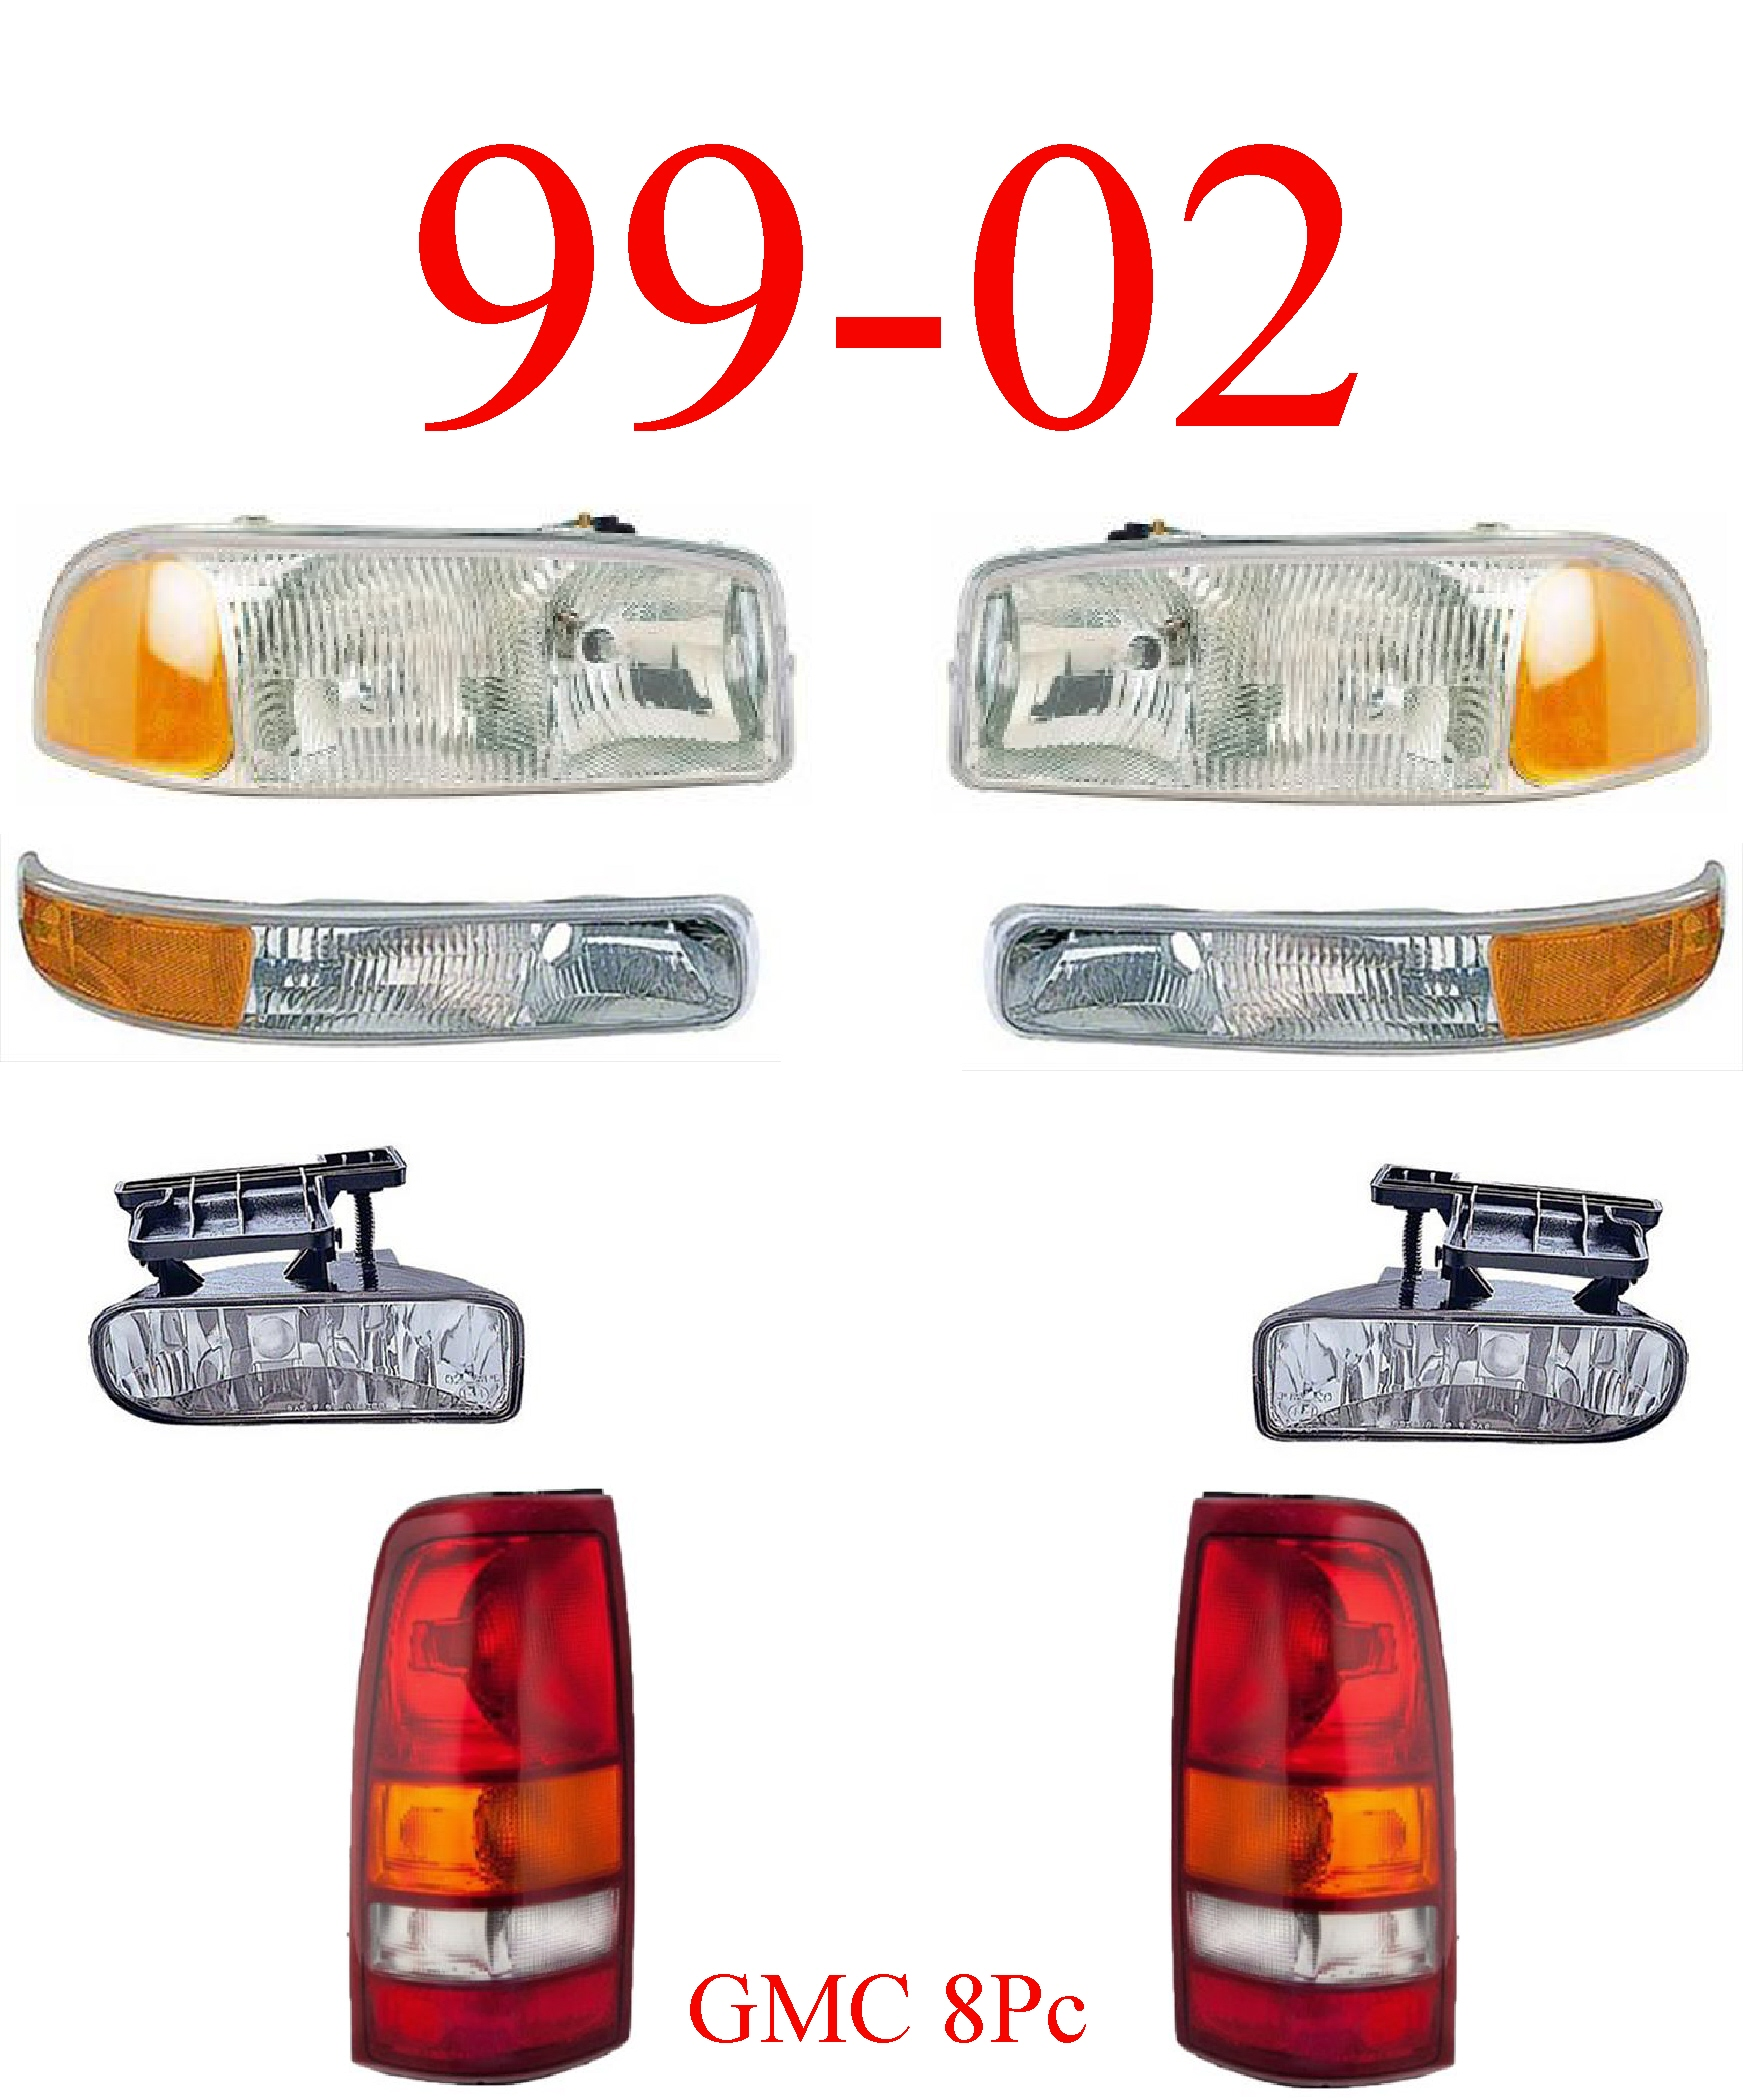 99-02 GMC Truck 8Pc Head, Park, Fog & Tail Light Set